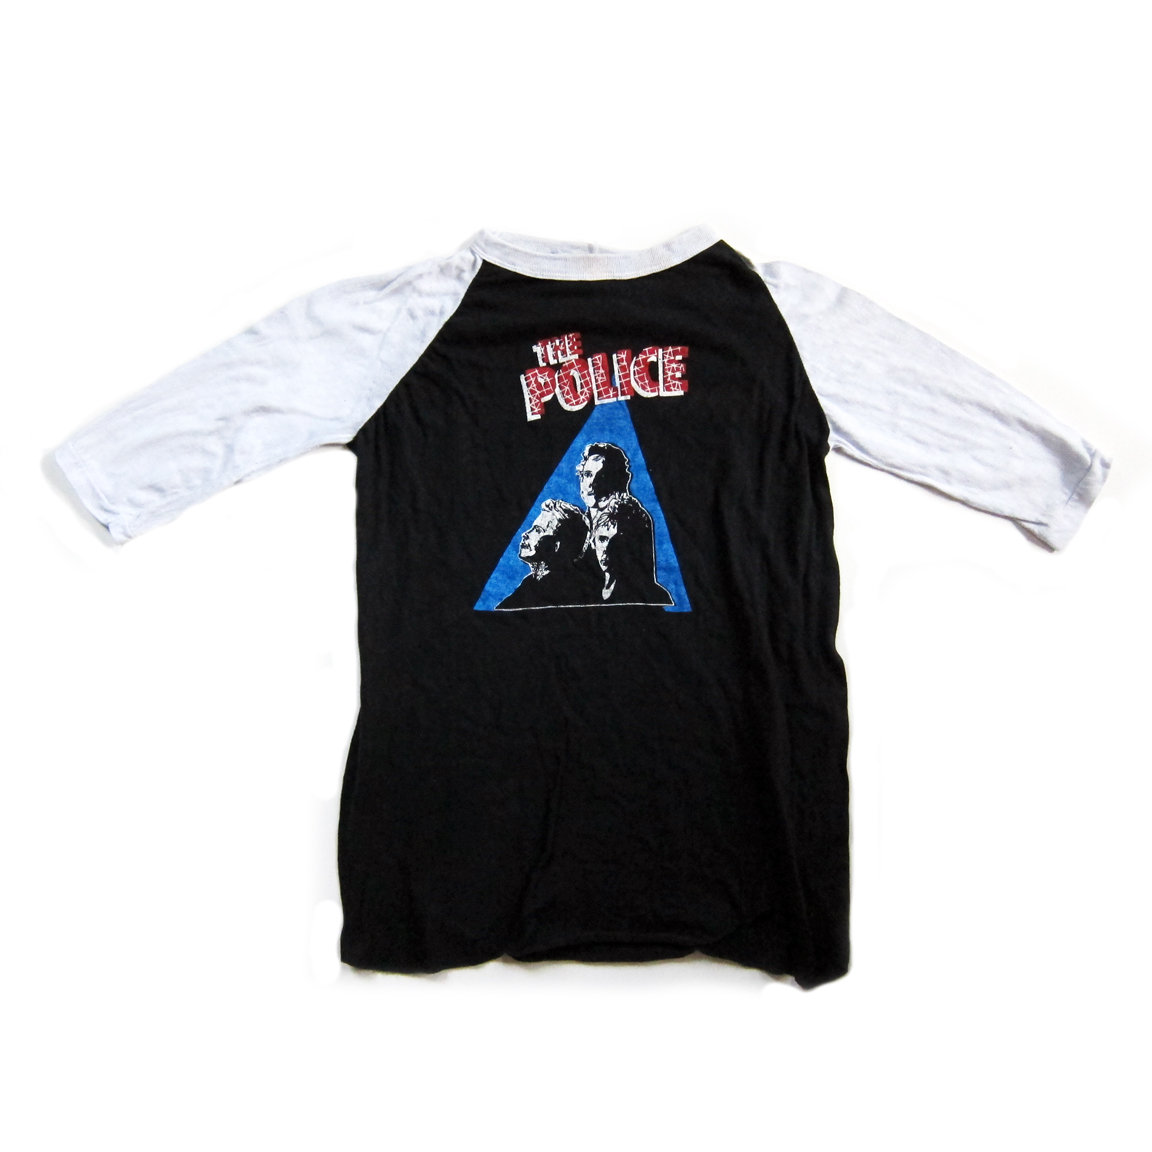 a5d03c37 The Police - Premium Vintage Rock Tee (from the 80s, never worn) LARGE